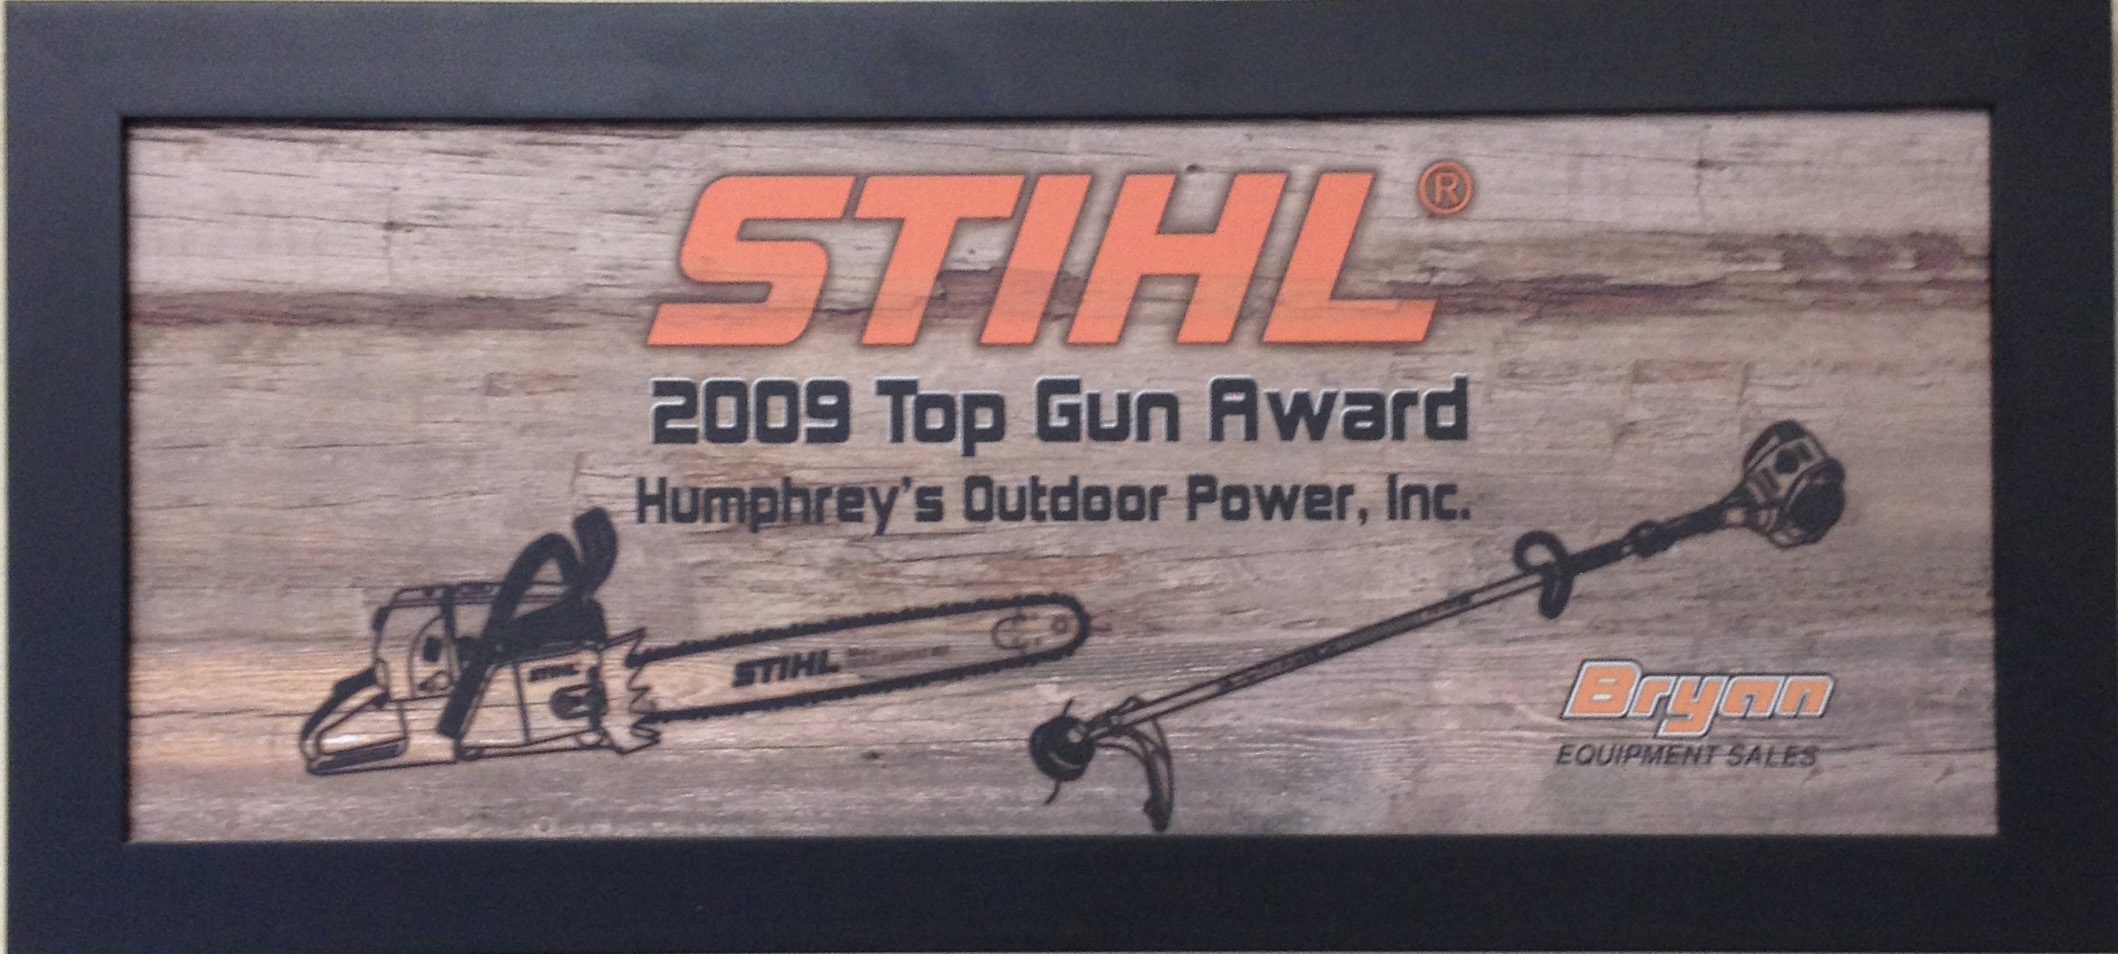 Humphreys' has won the Bryan Equipment Top Gun award every year since 2006! This is awarded for excellence in sales.